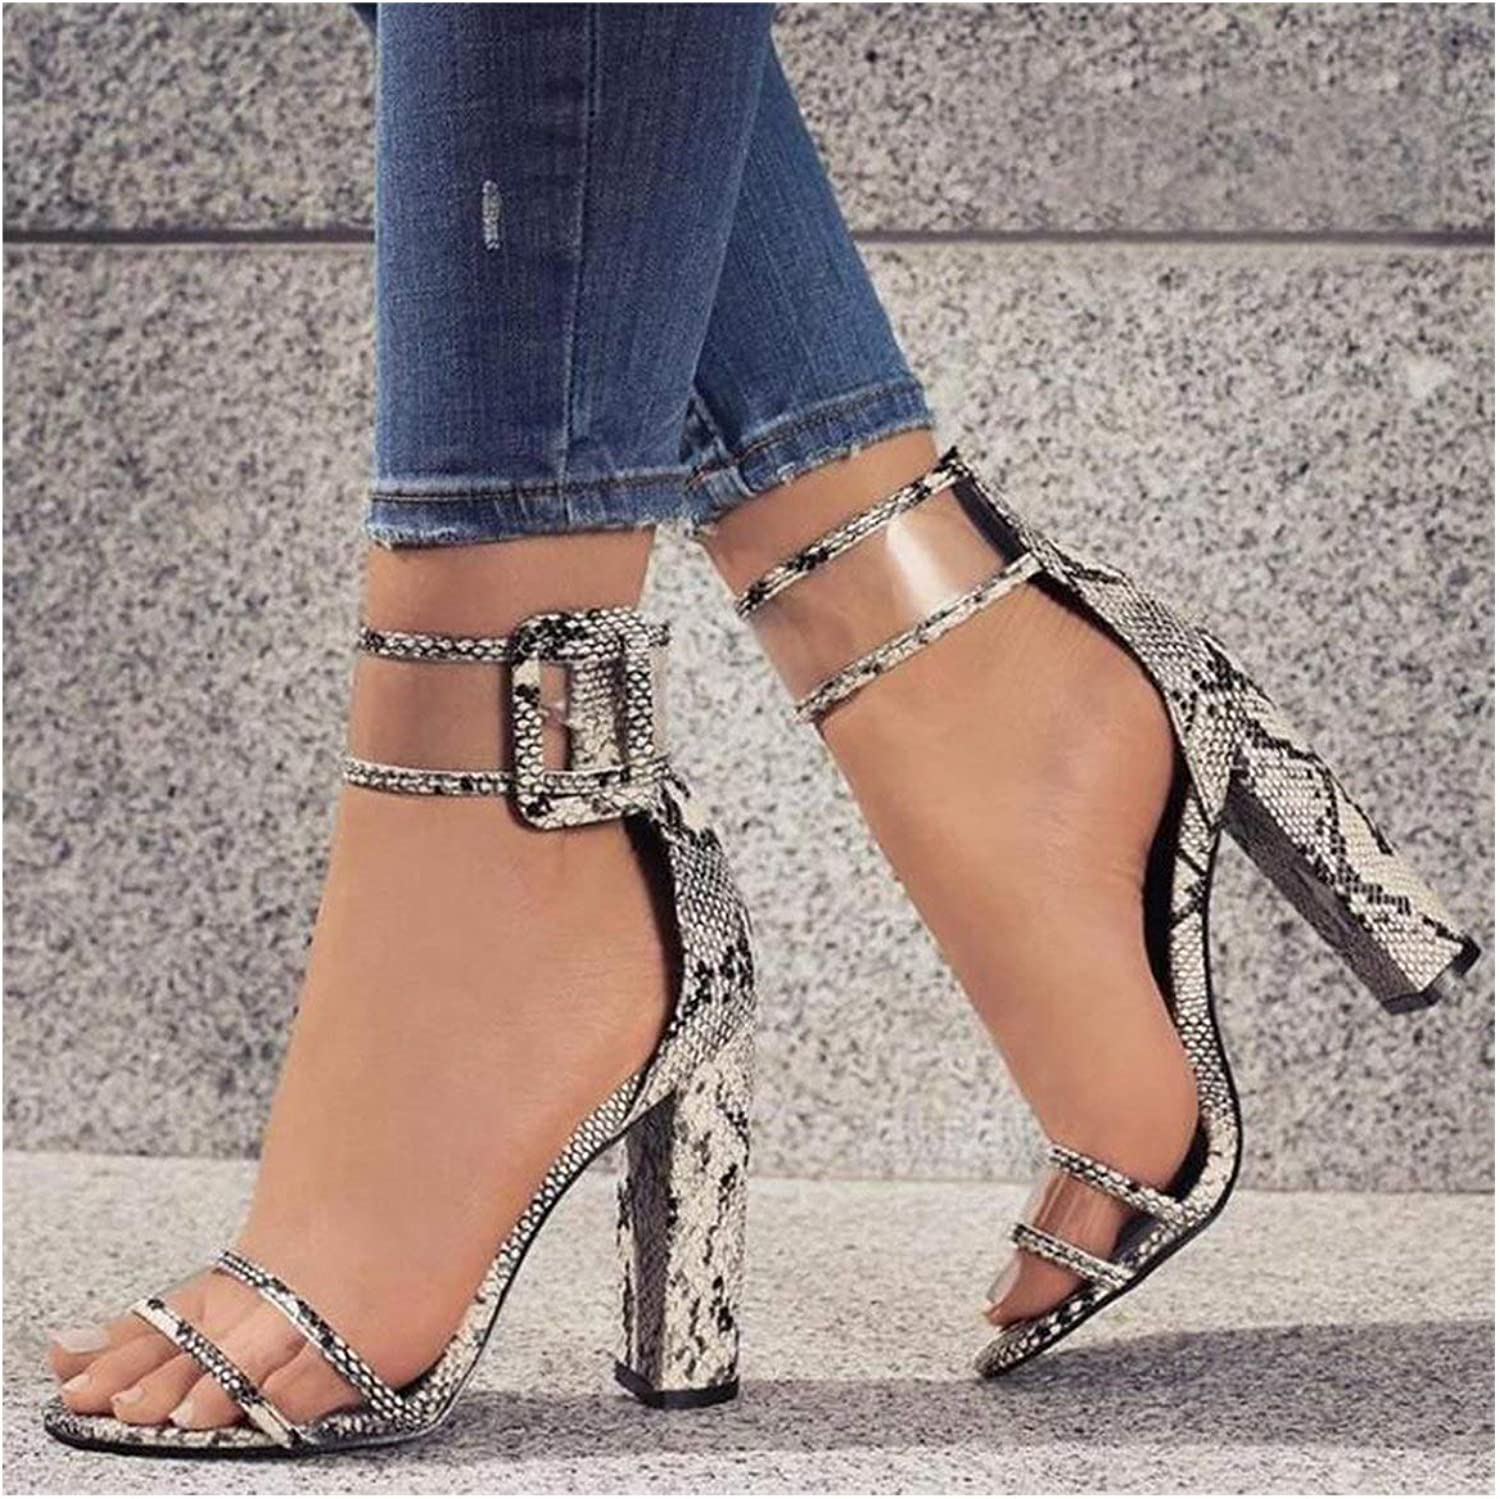 MiniYoo 2019 shoes Summer shoes T-Stage Fashion High Heel Sandals Sexy Stiletto Party Wedding shoes White Black